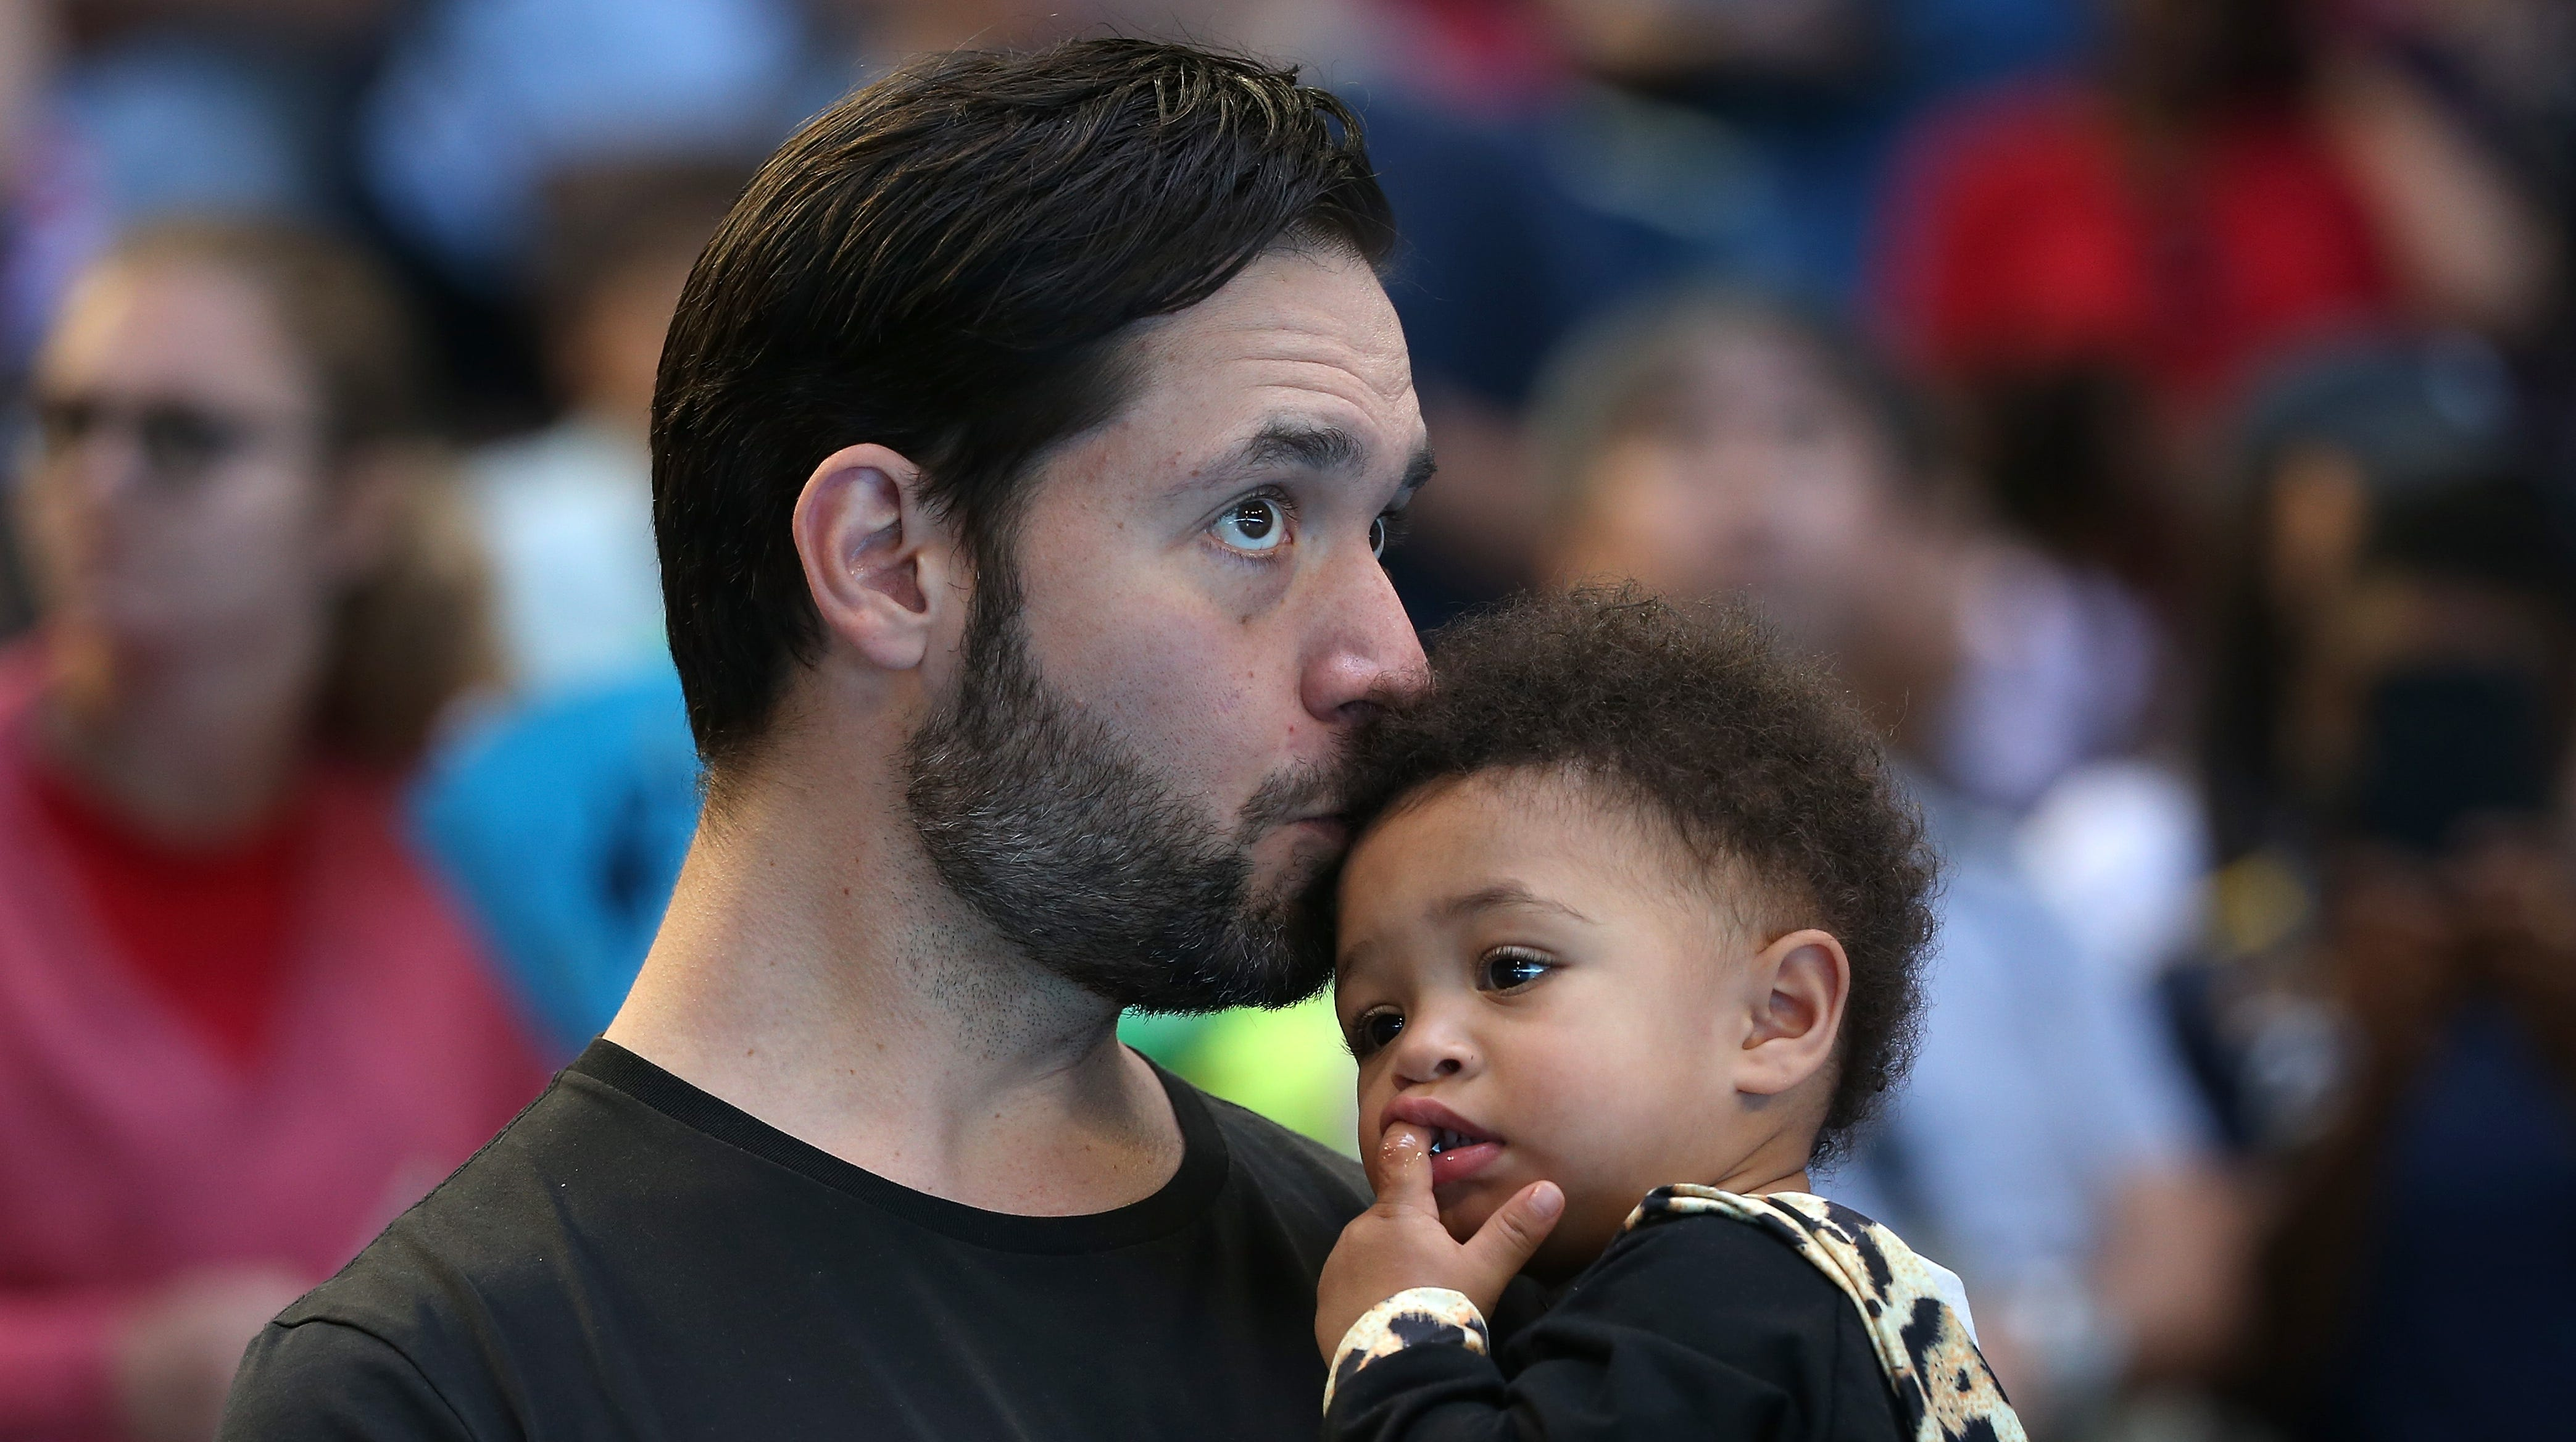 Alexis Ohanian took 16 weeks parental leave to 'show up' for Serena Williams and Olympia